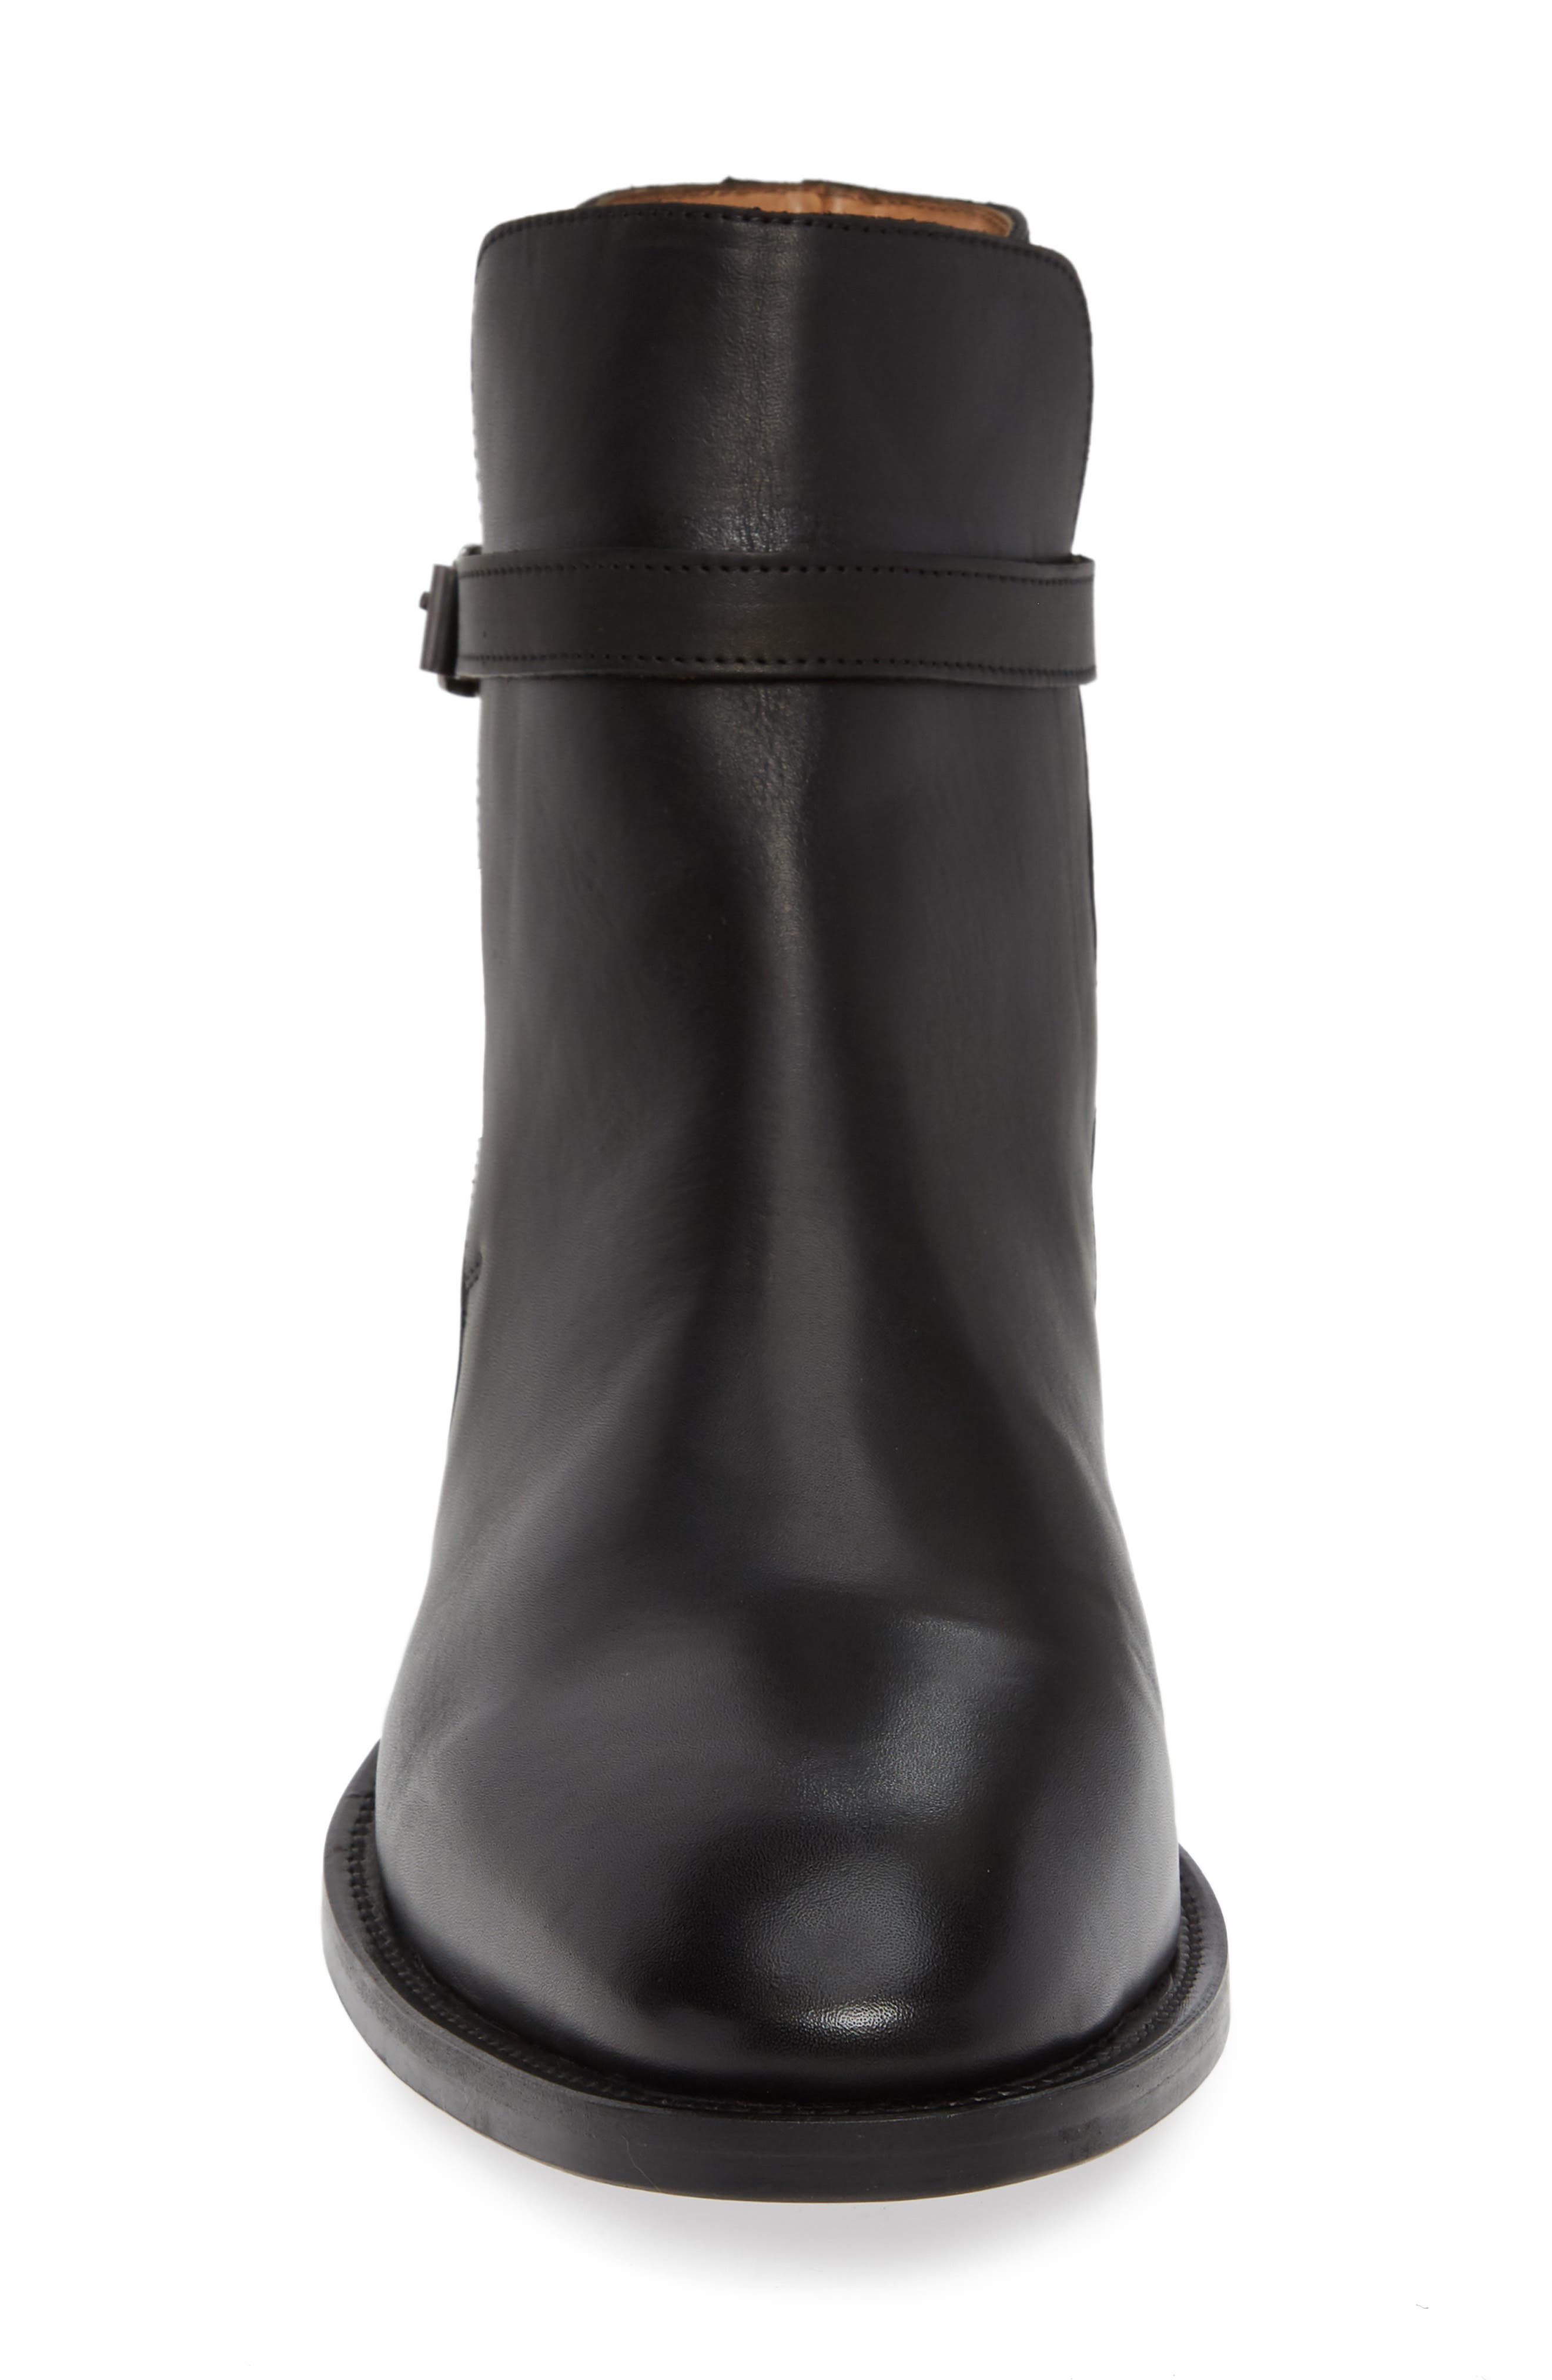 Hop Buckle Strap Boot,                             Alternate thumbnail 4, color,                             BLACK LEATHER